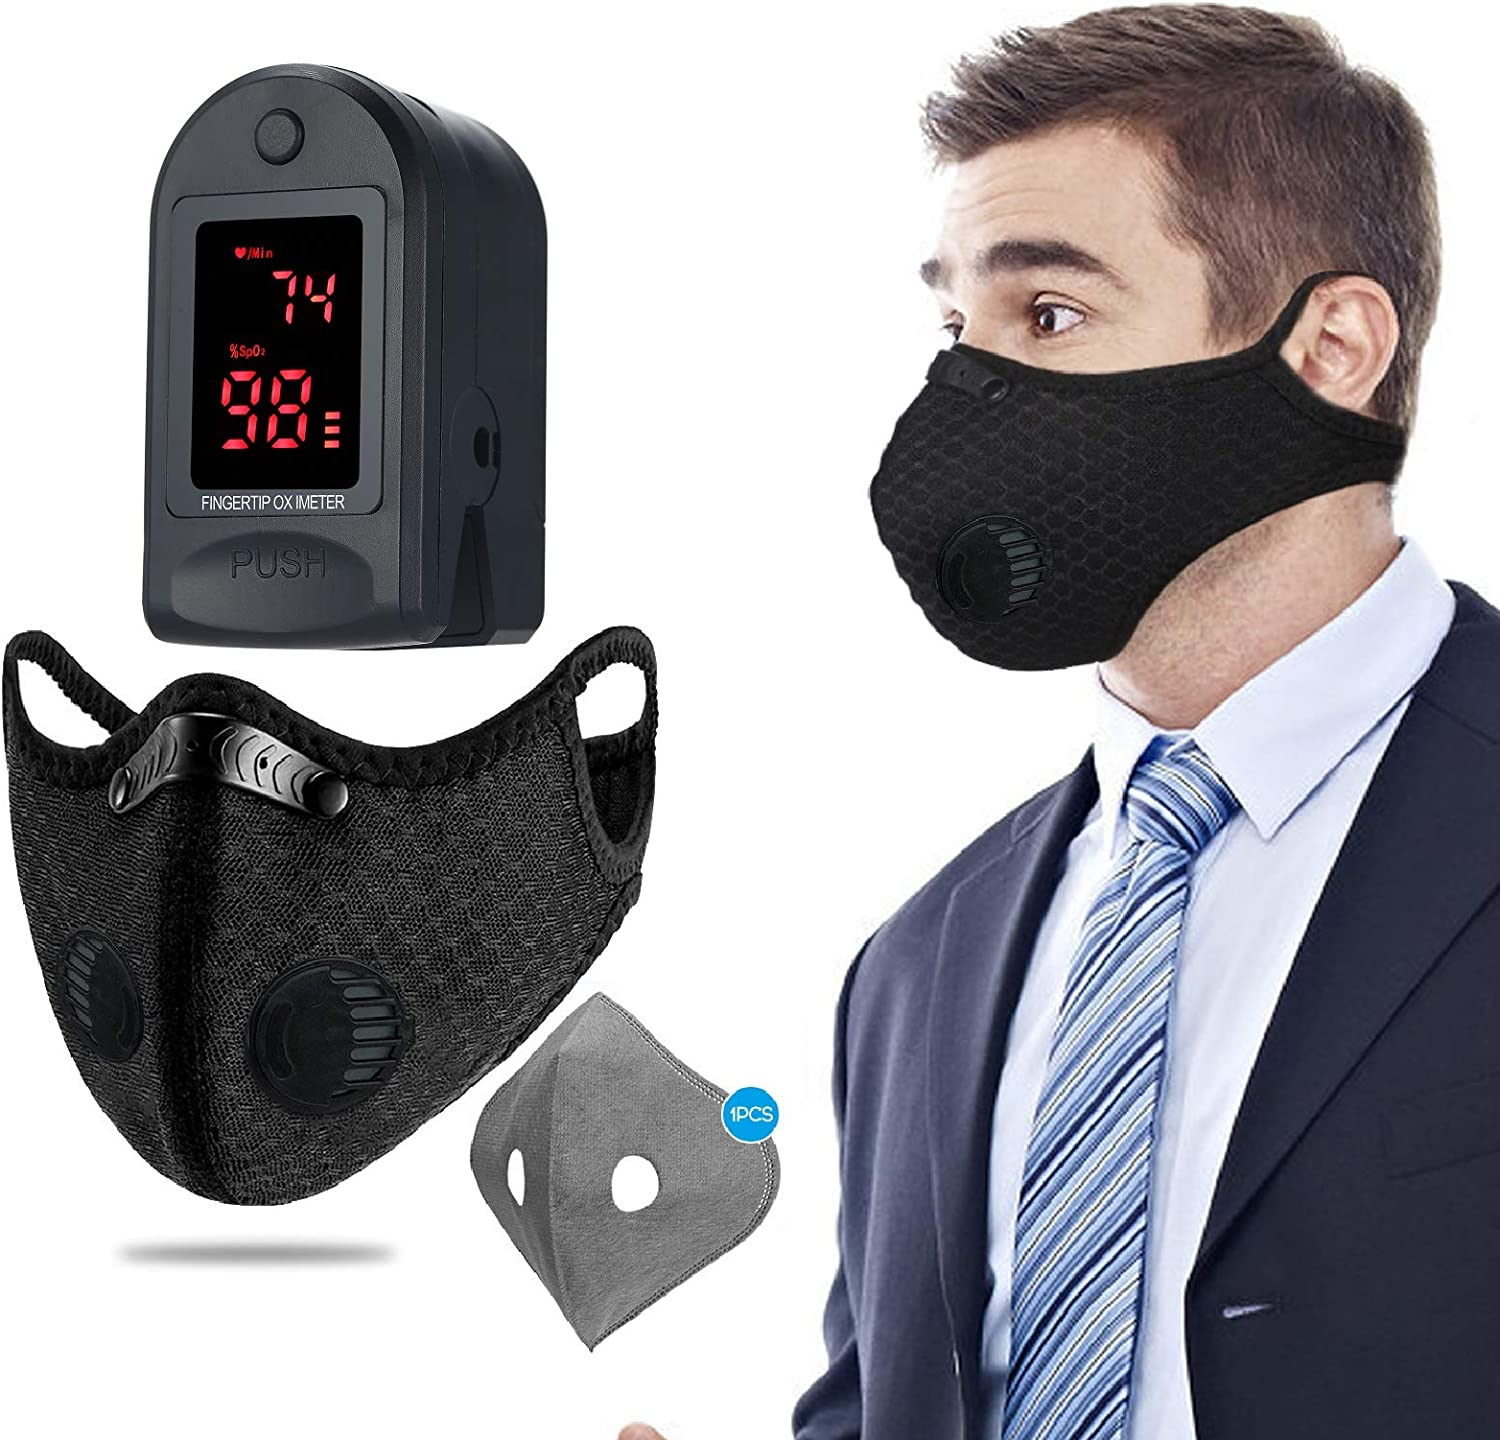 Anself Reusable Sport Cover for Men & Women with Cotton Air Filter + Mini Fingertip Tester OLED Display for Home Use WAS £26.30 NOW £7.99 w/code 84SUSHRB @ Amazon